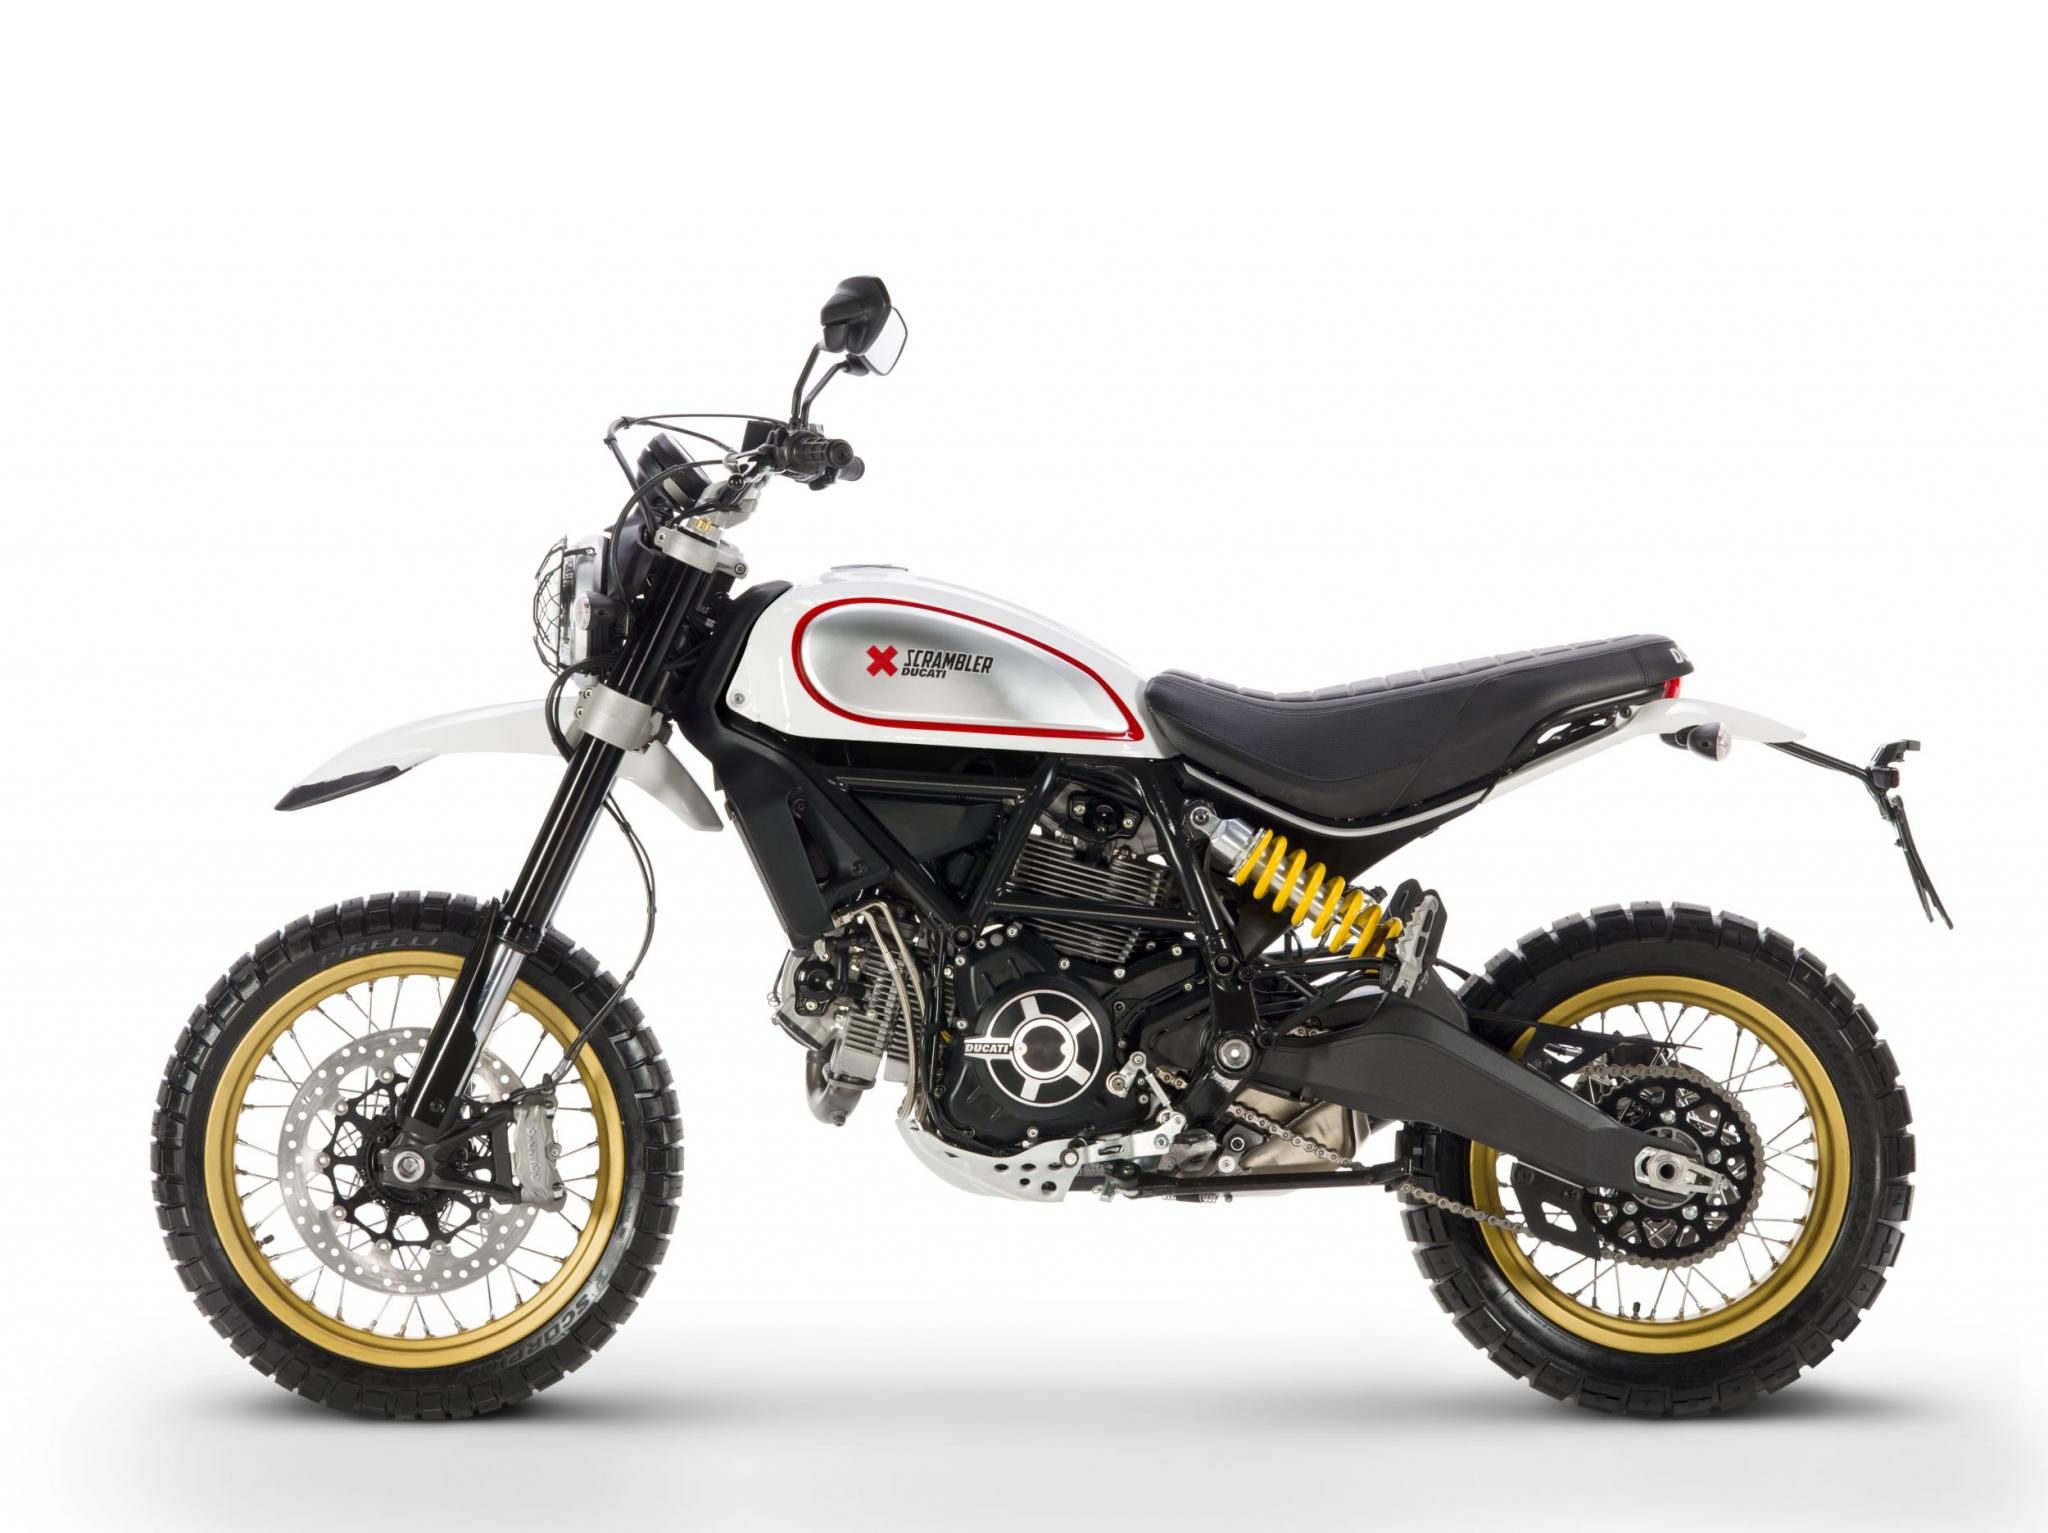 ducati scrambler desert sled test 2017 motorrad fotos. Black Bedroom Furniture Sets. Home Design Ideas